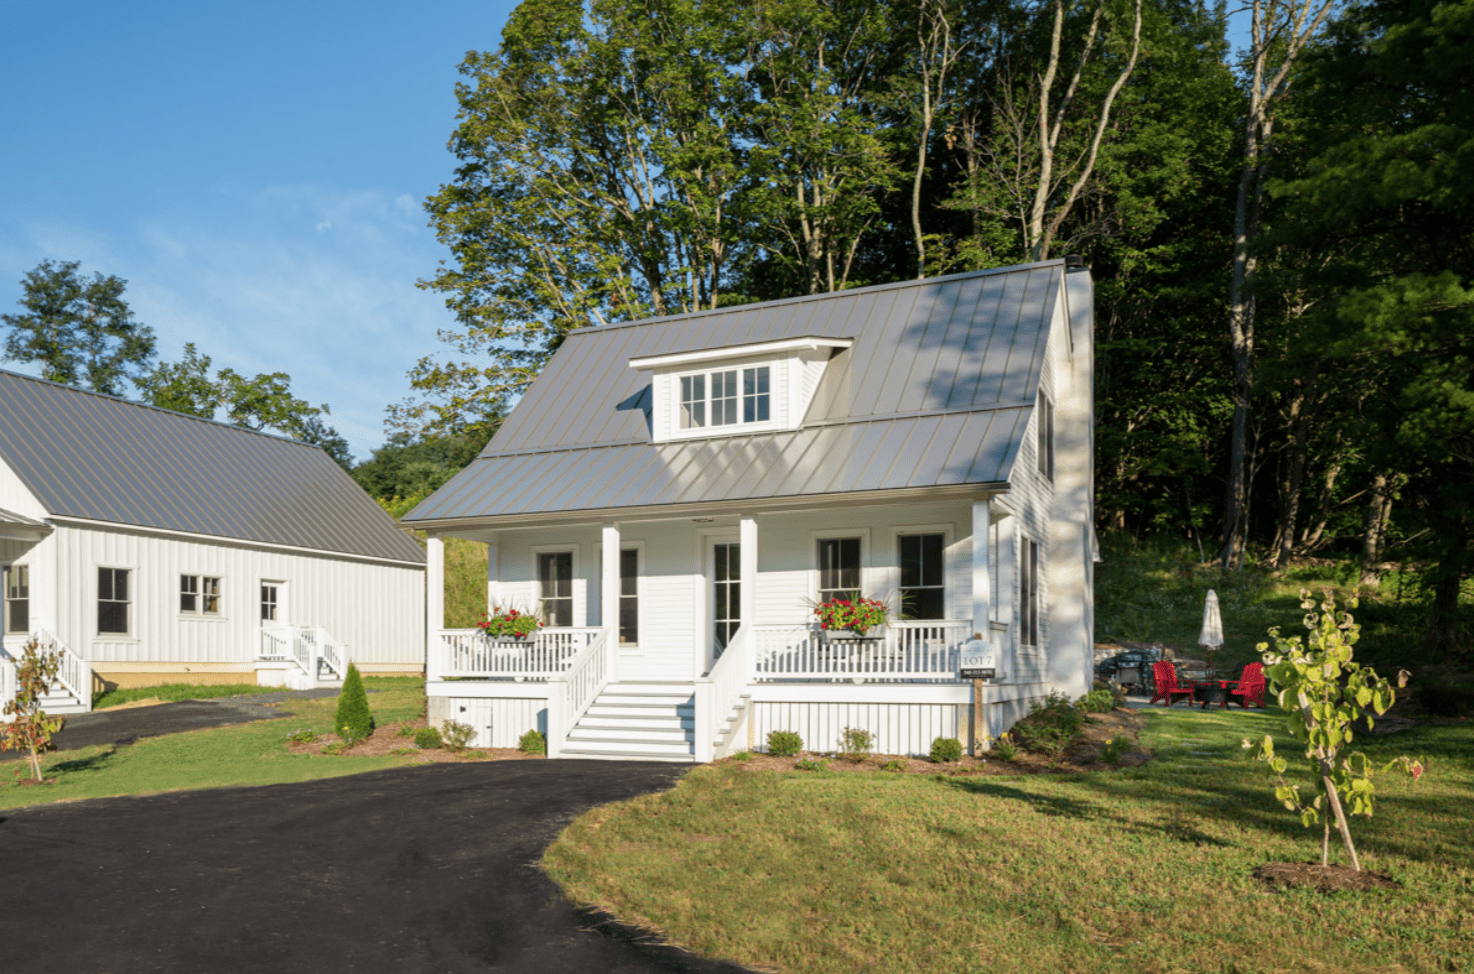 white-house-front-yard-green-grass-madison-cottage-warm-springs-va